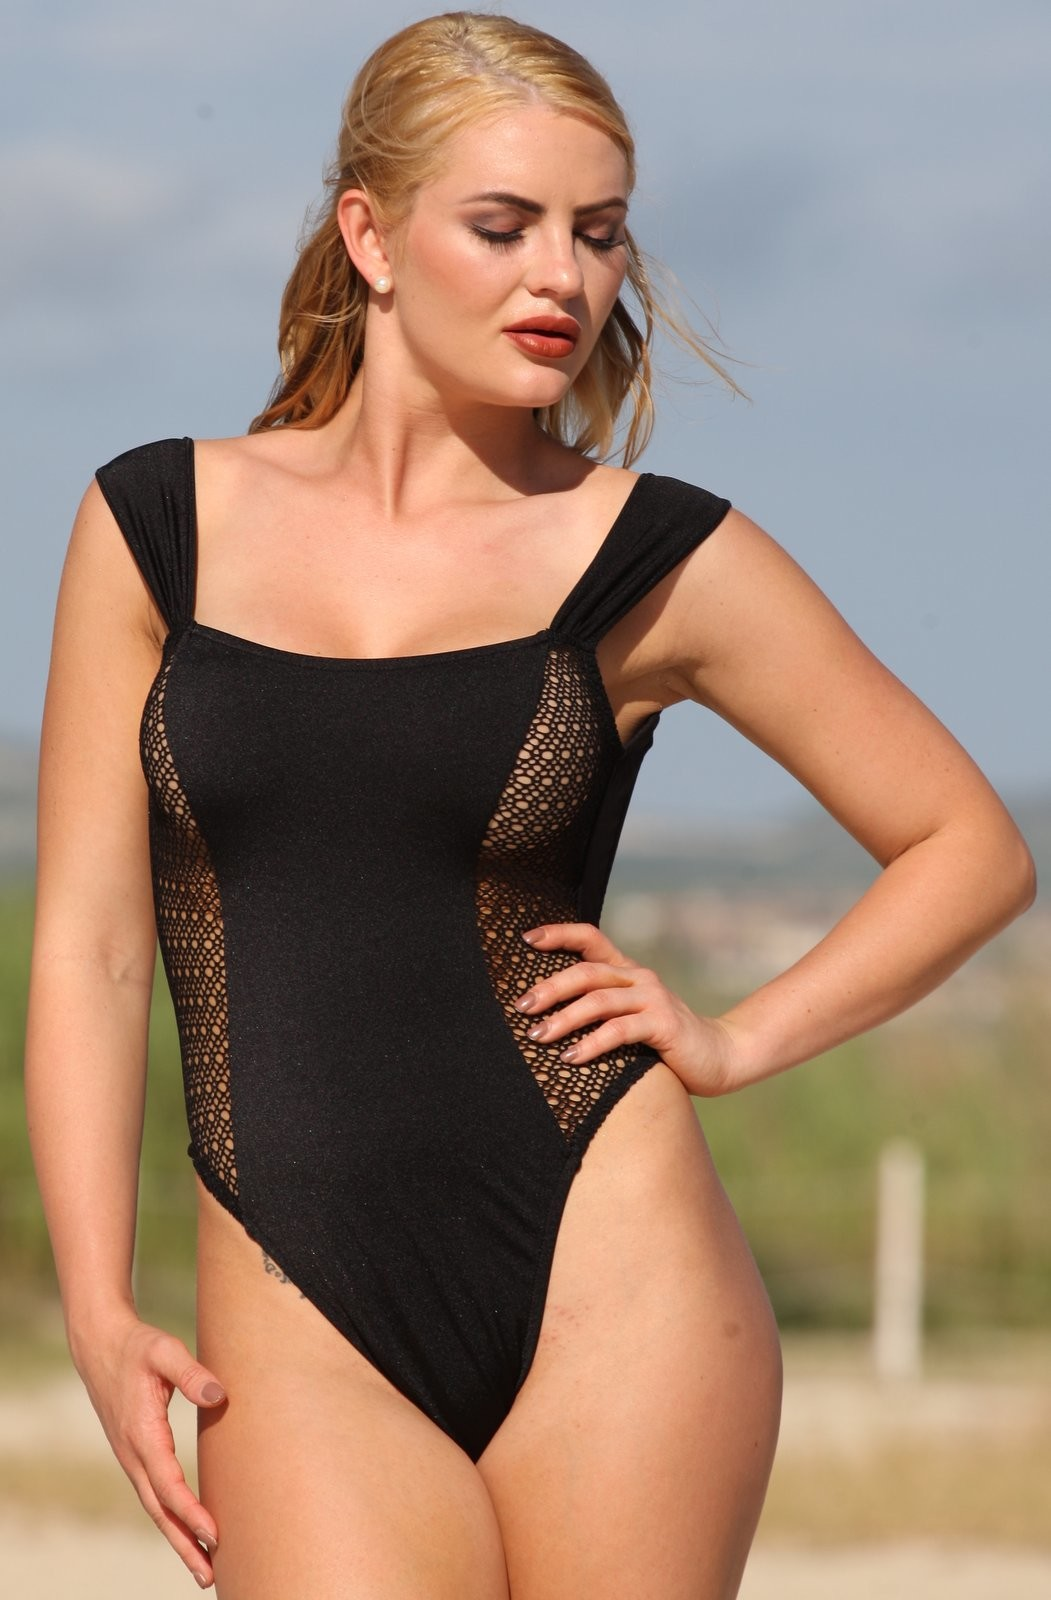 dc216dd2d4 Ujena La Risque One Piece Bathing Suit